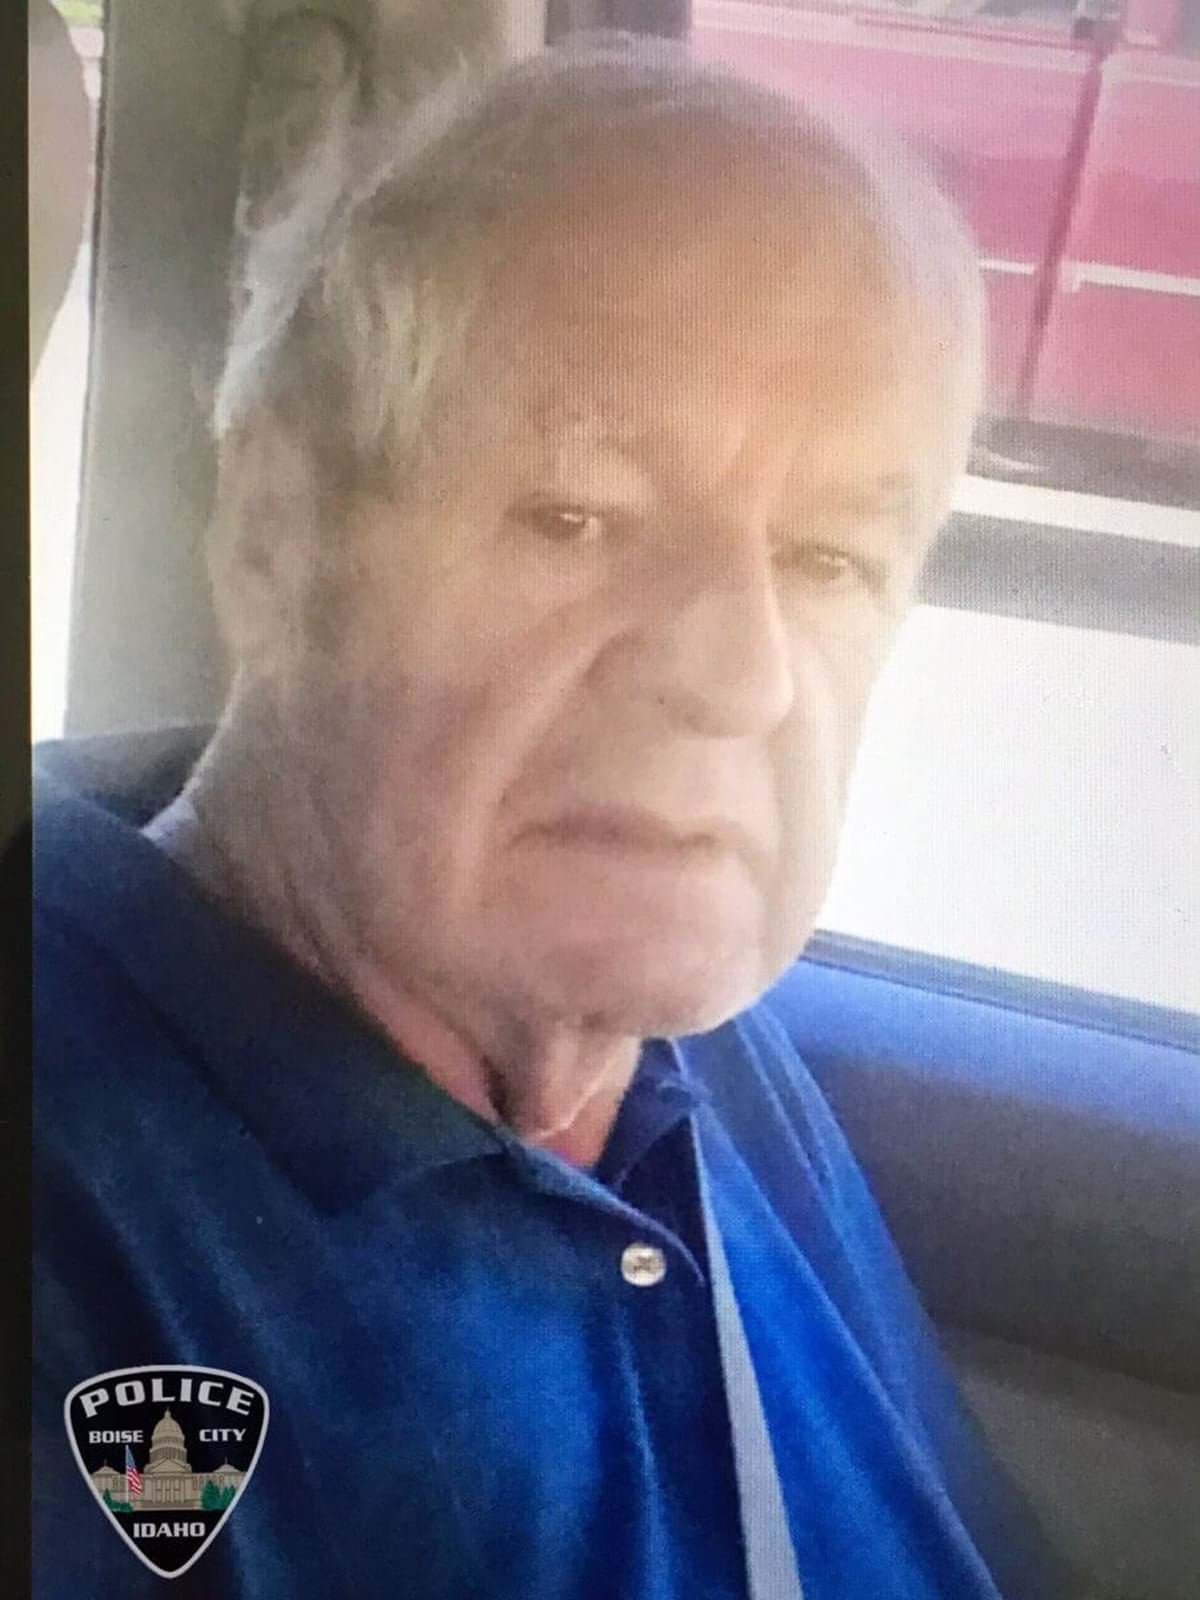 Paul left on a walk from the area of Fairview and Milwaukee about two hours ago. He was wearing a purple shirt and khaki pants.